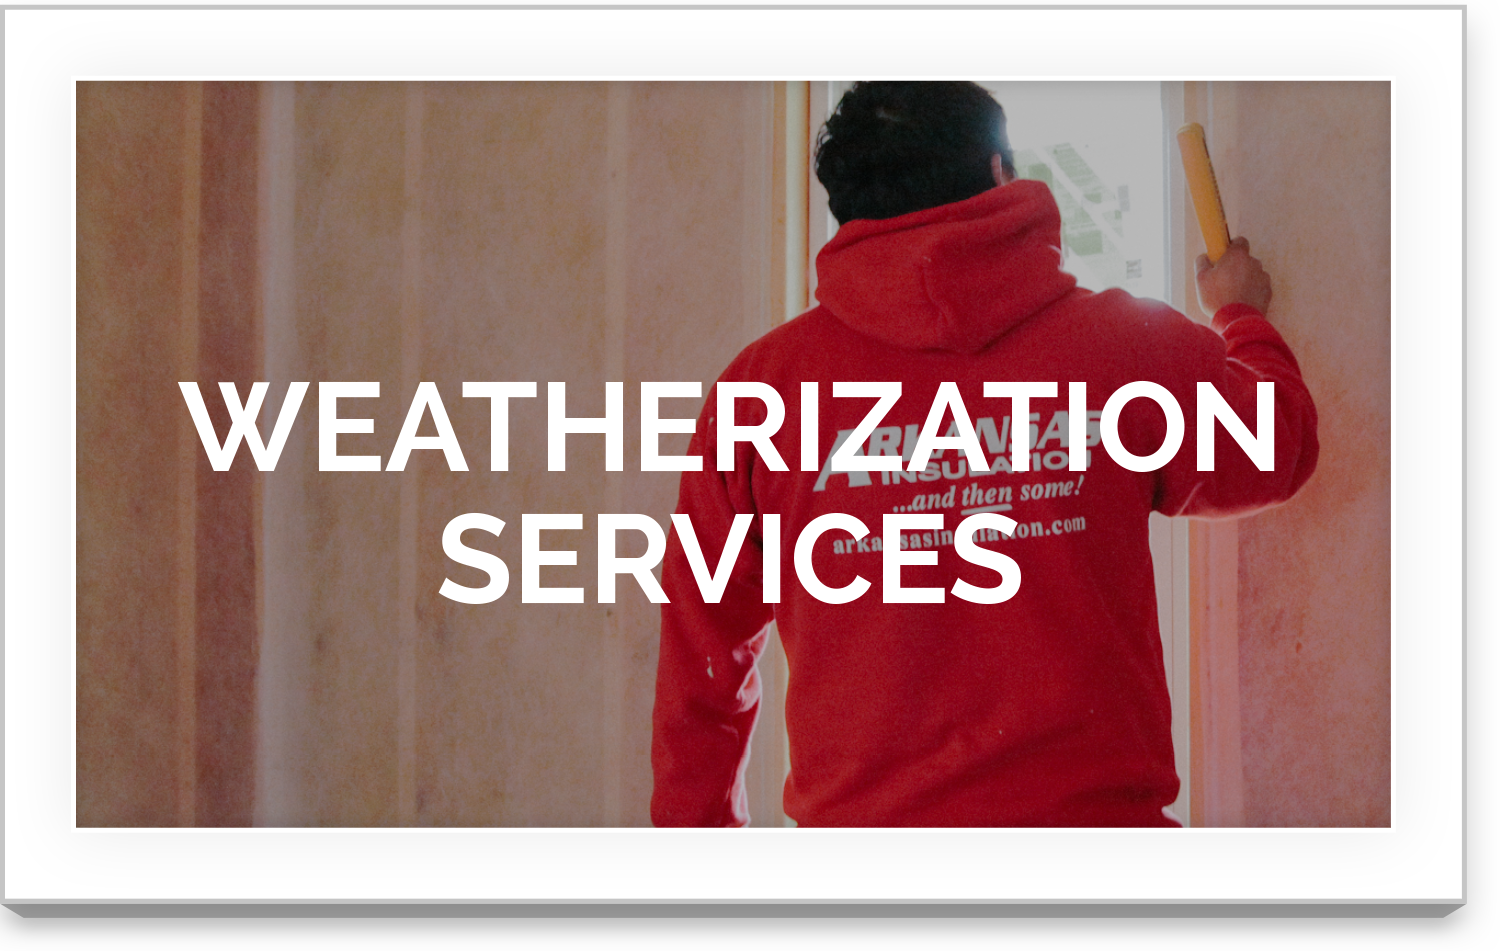 Weatherization Services